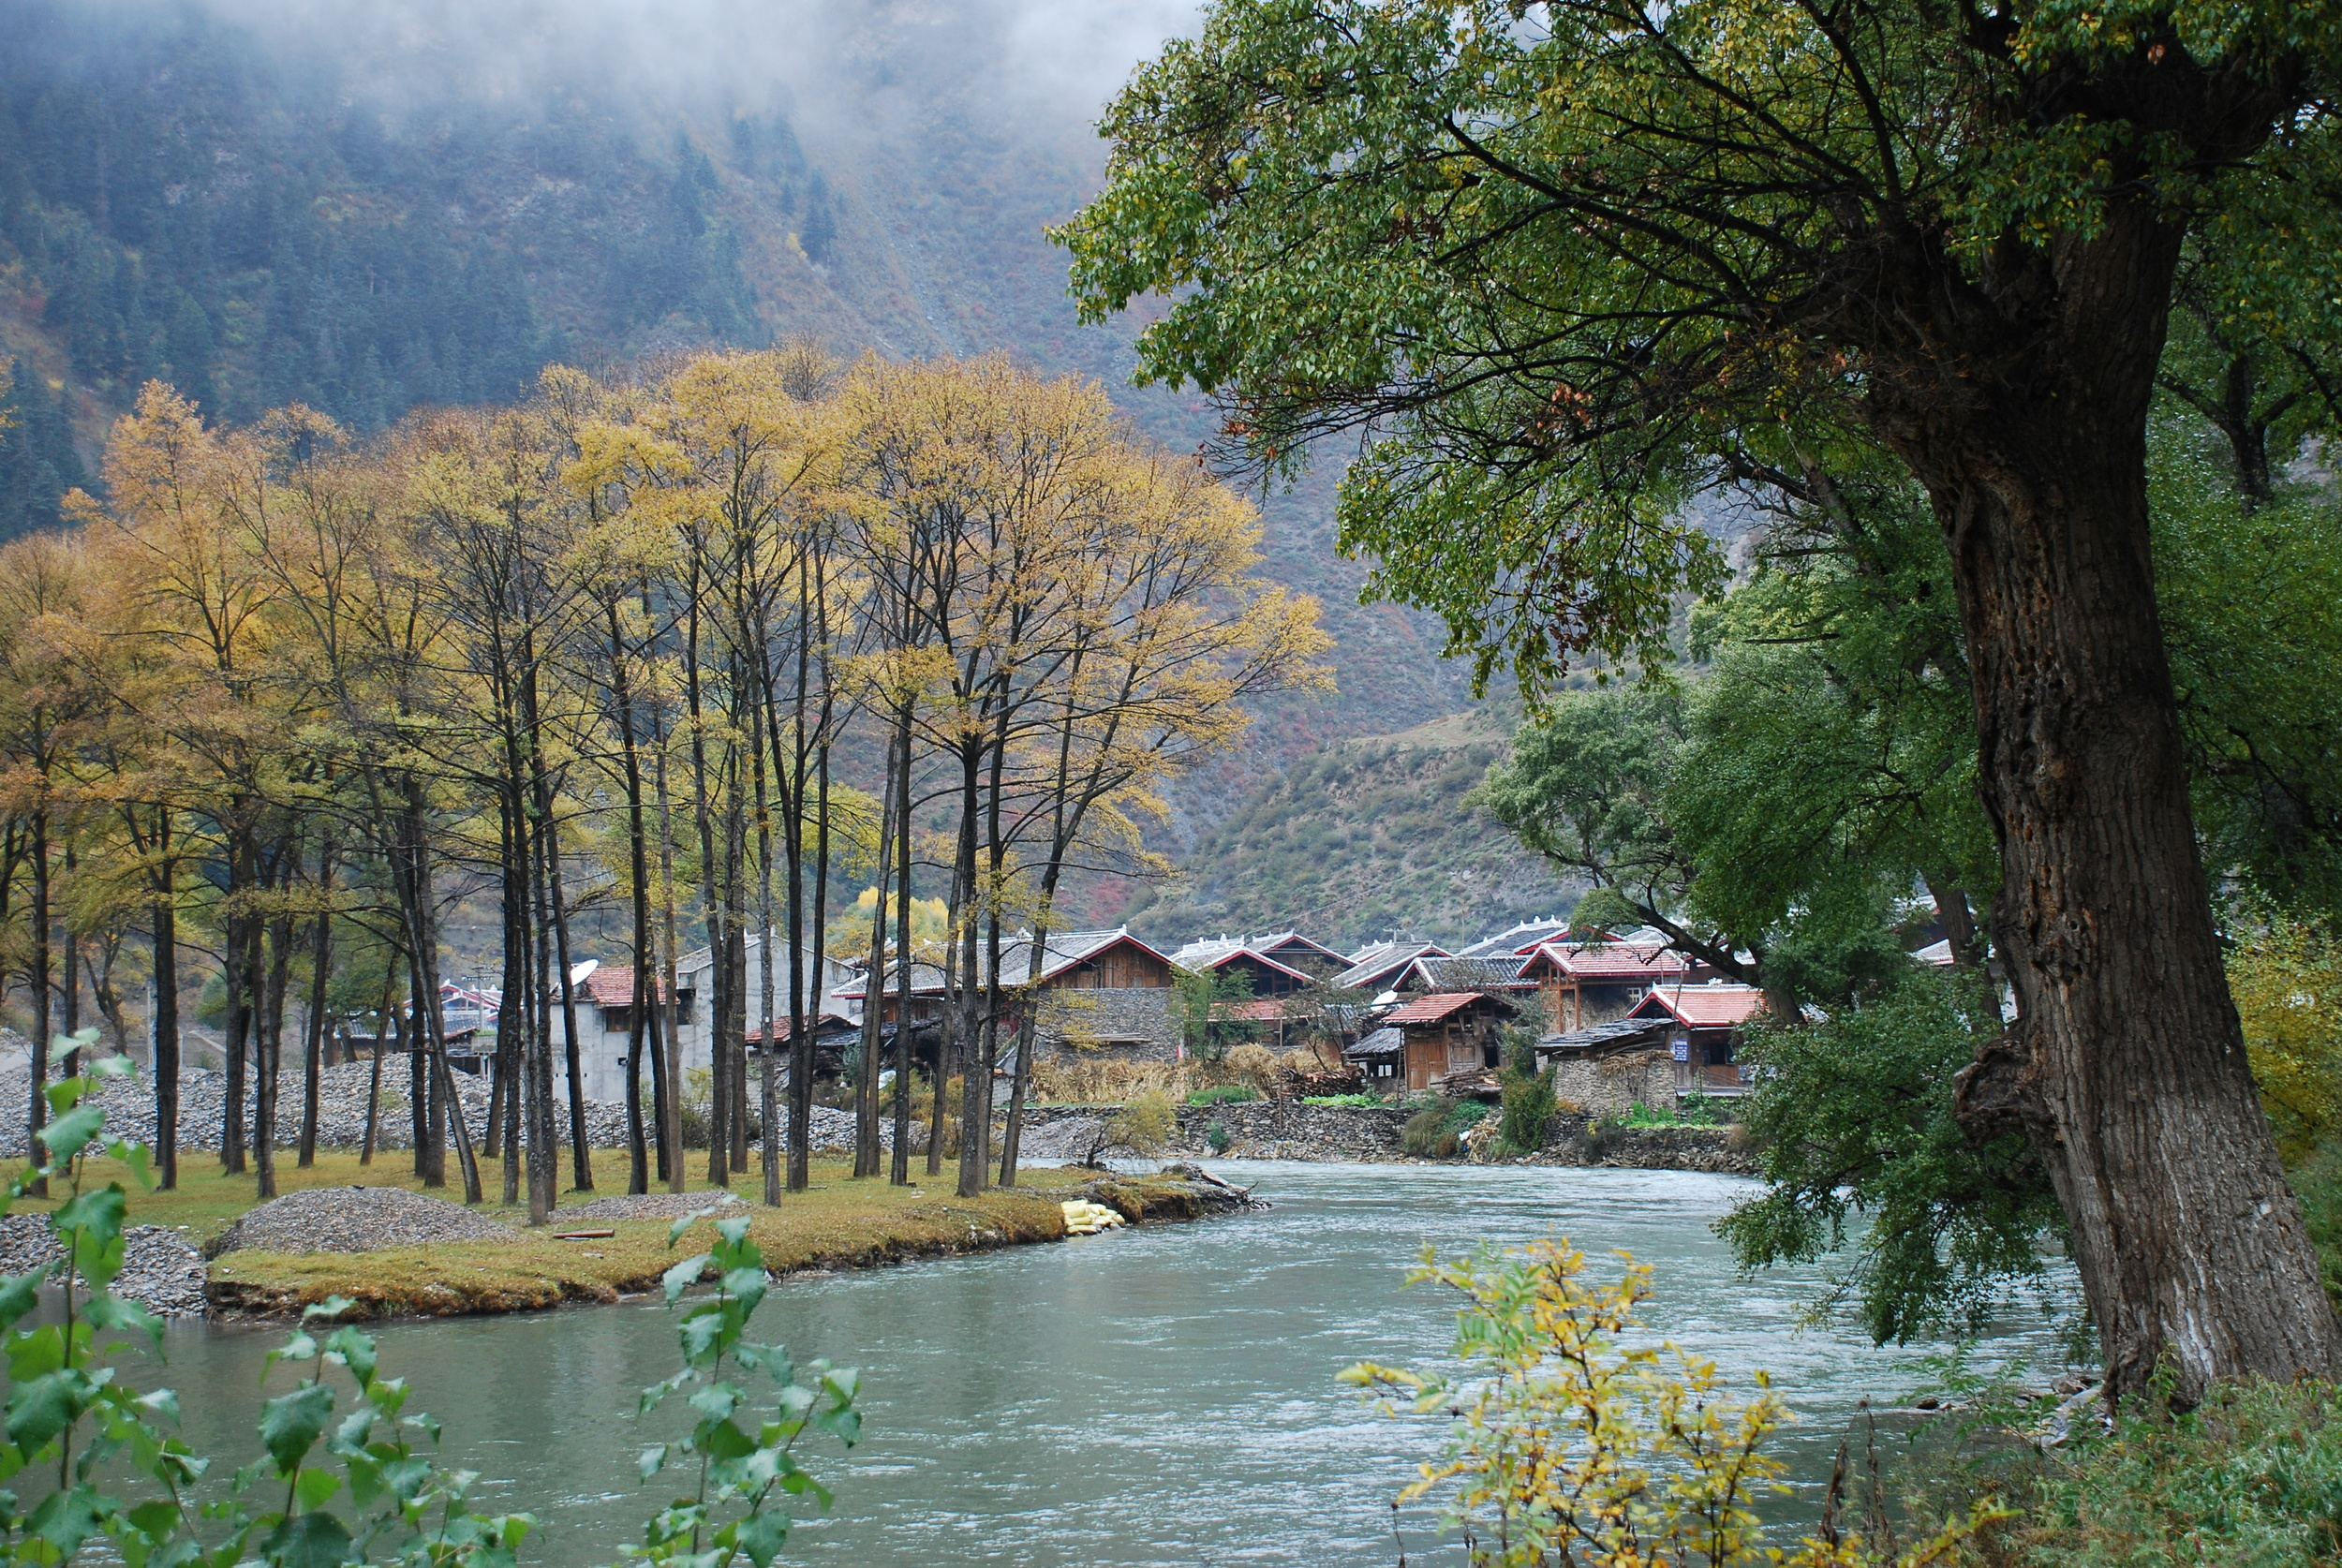 MOST BEAUTUFUL VILLAGES IN CHINA